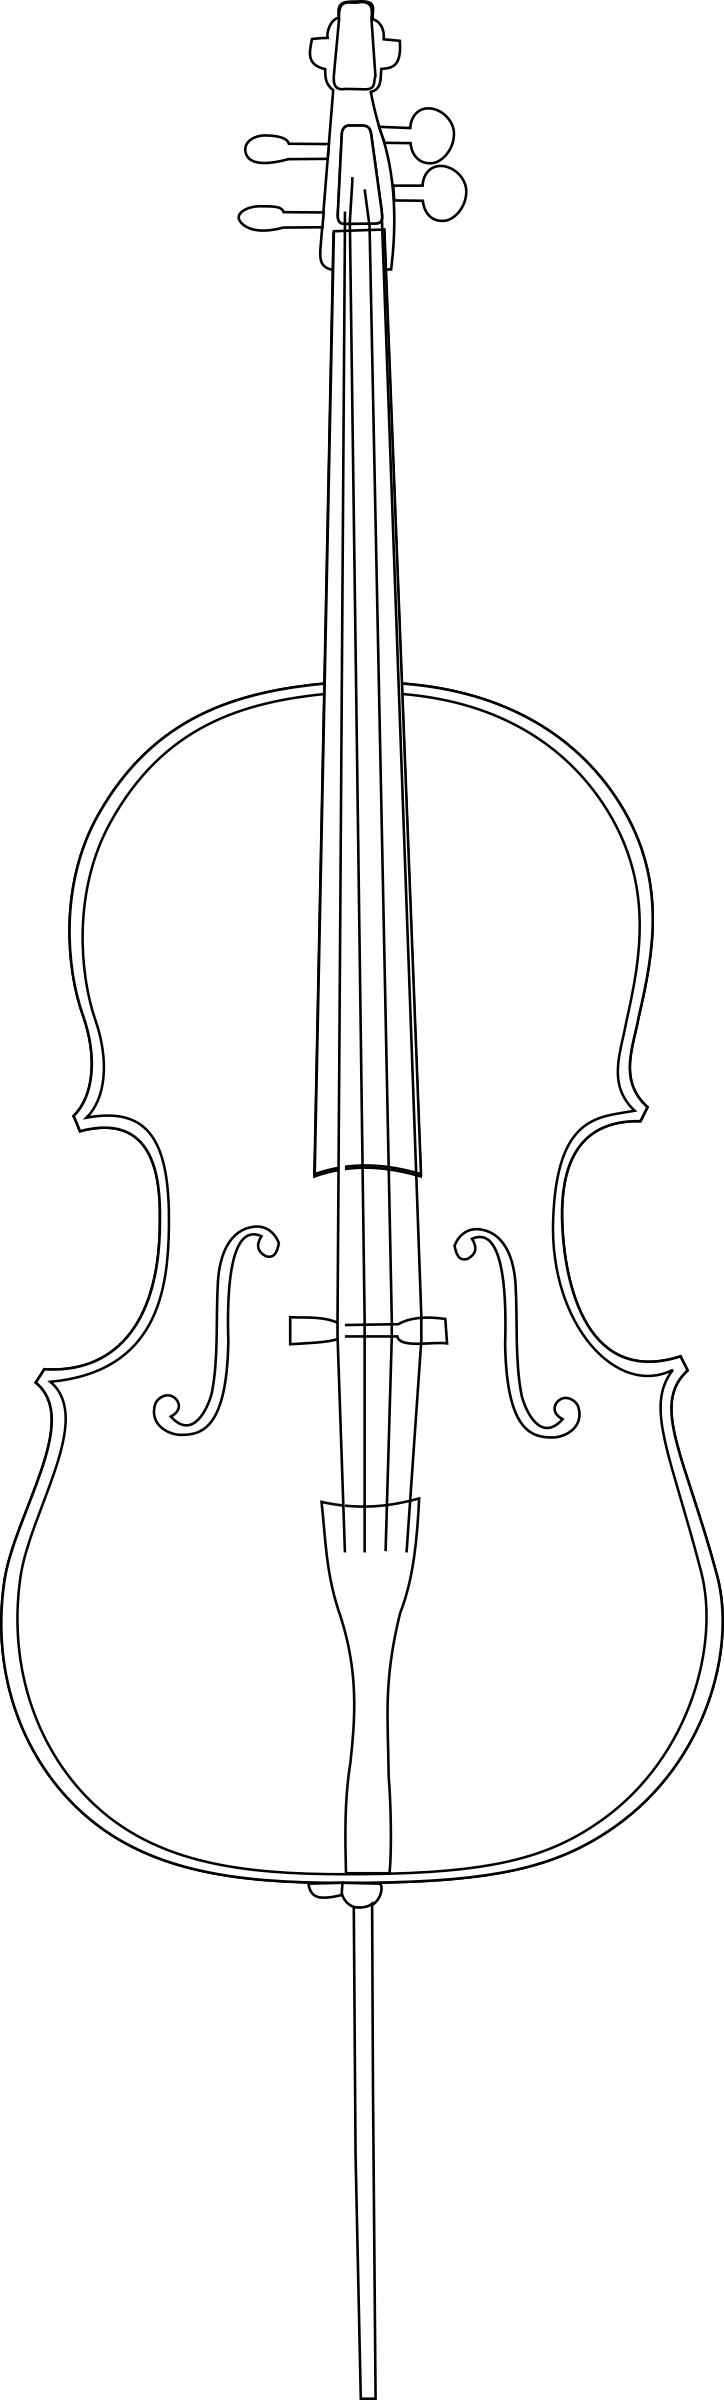 Cello clipart silhouette. Big image png